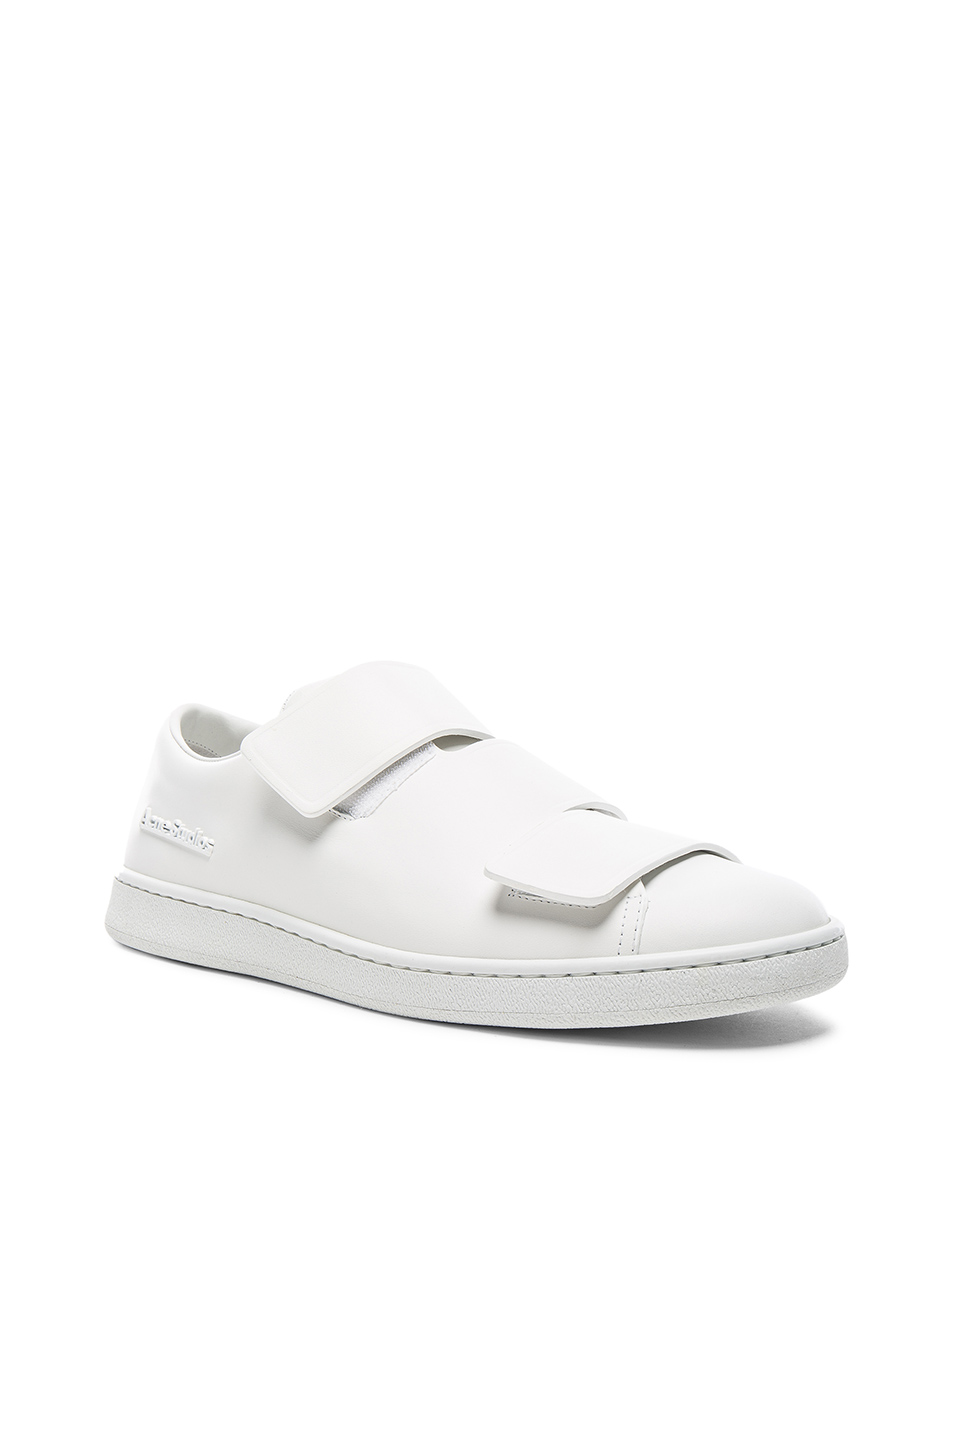 Acne Studios Leather Triple Lo Sneakers in White